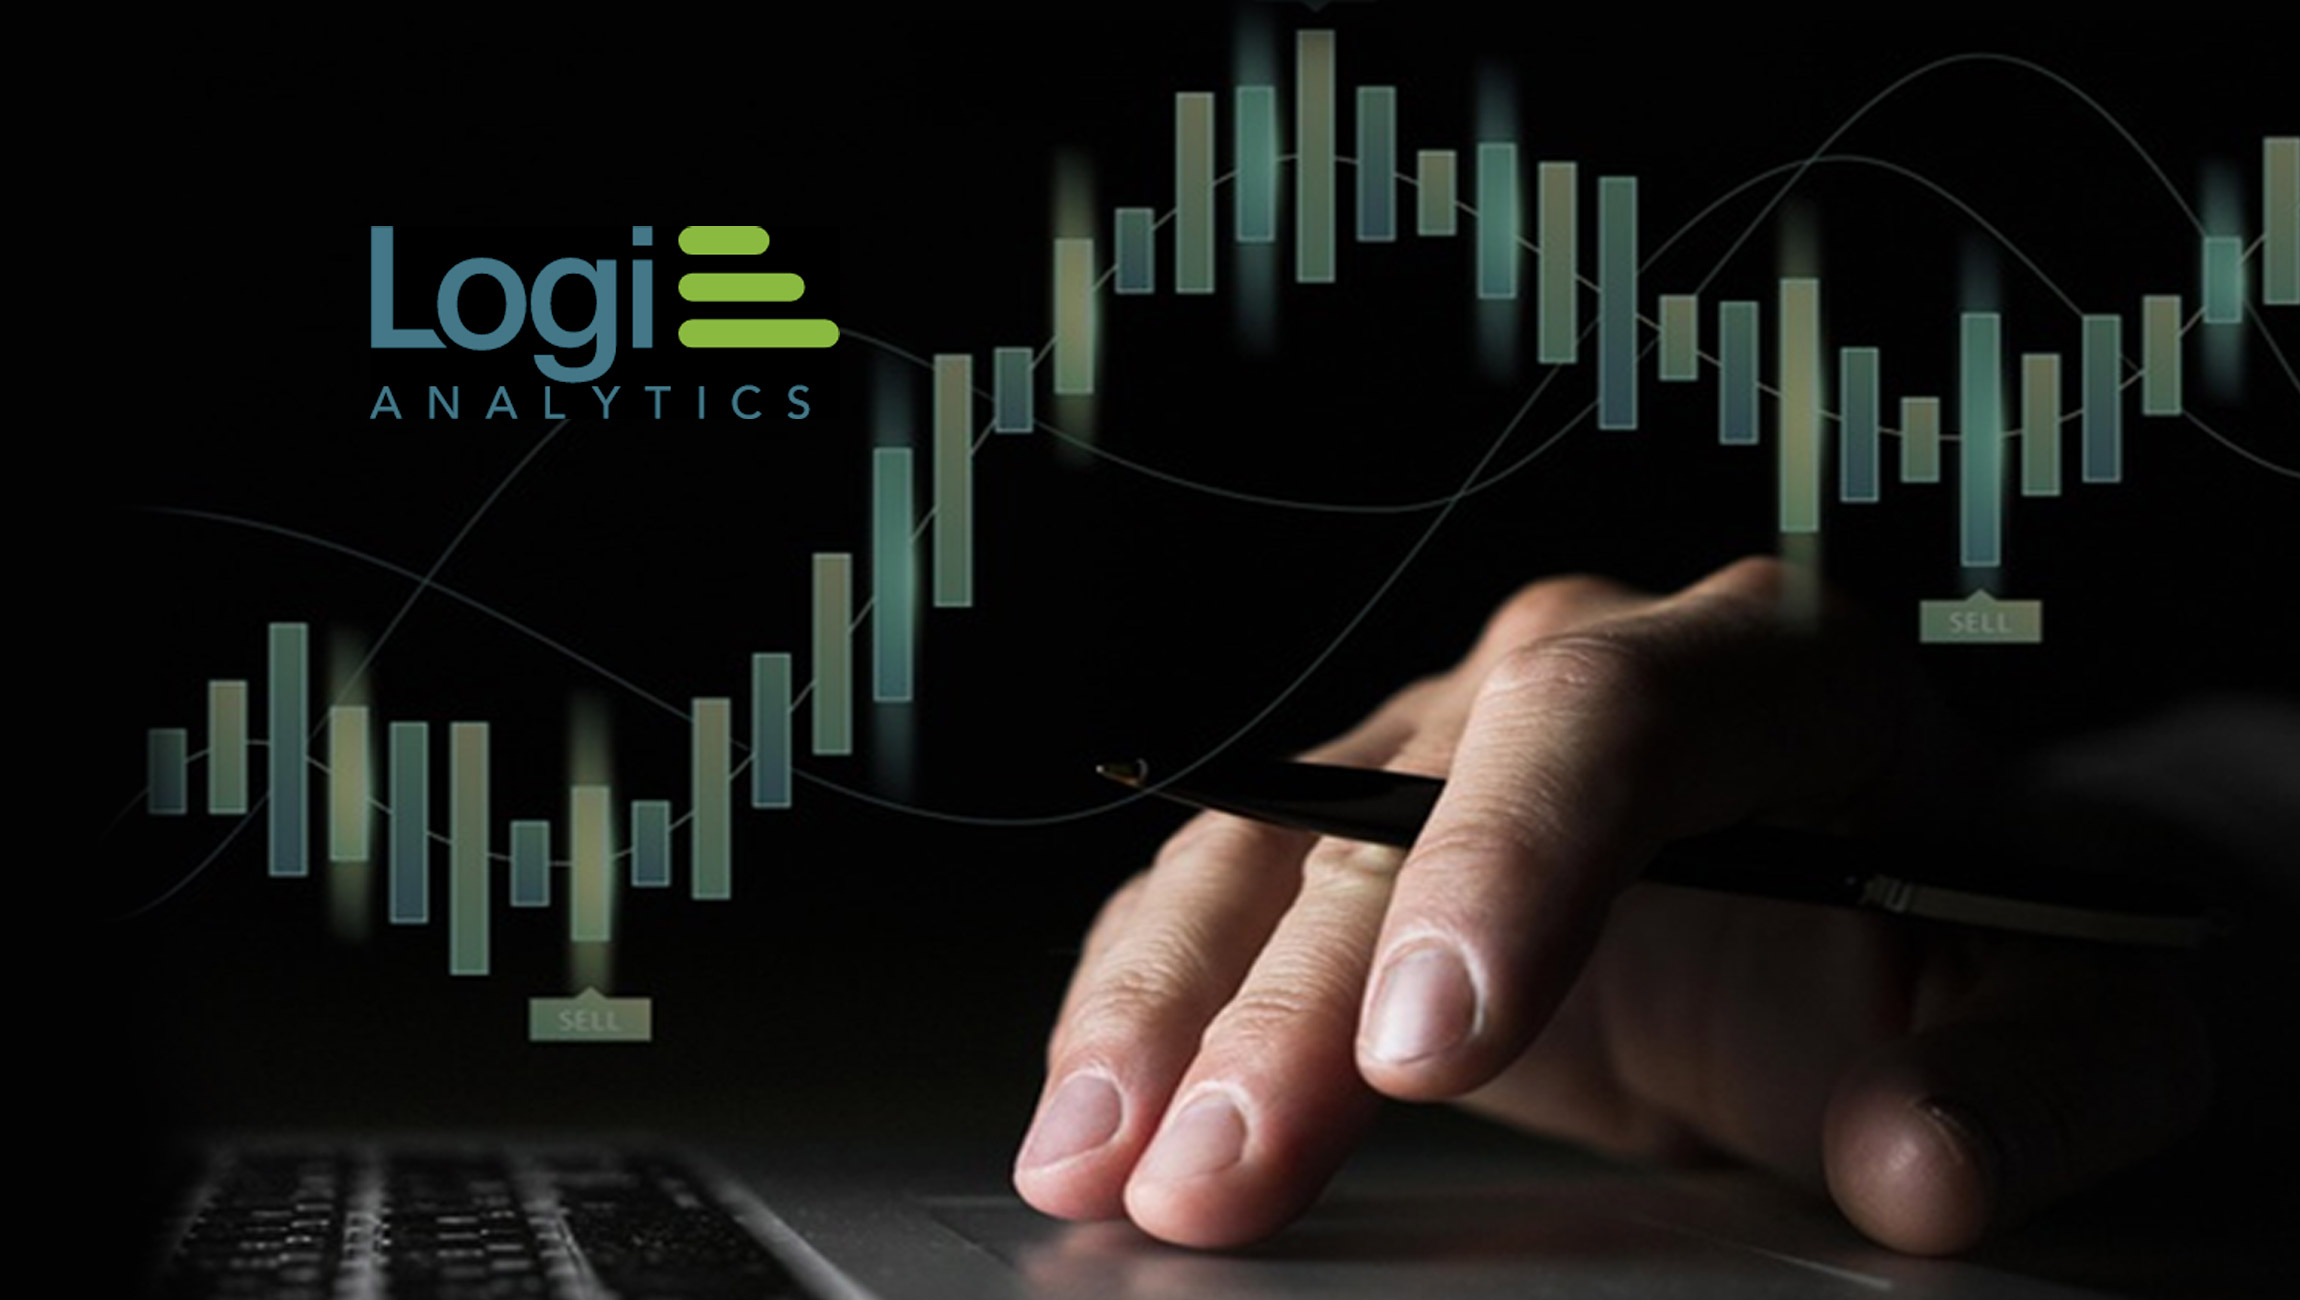 Logi Analytics Research Outlines Critical Business Advantages for Data Leaders Investing in Analytics